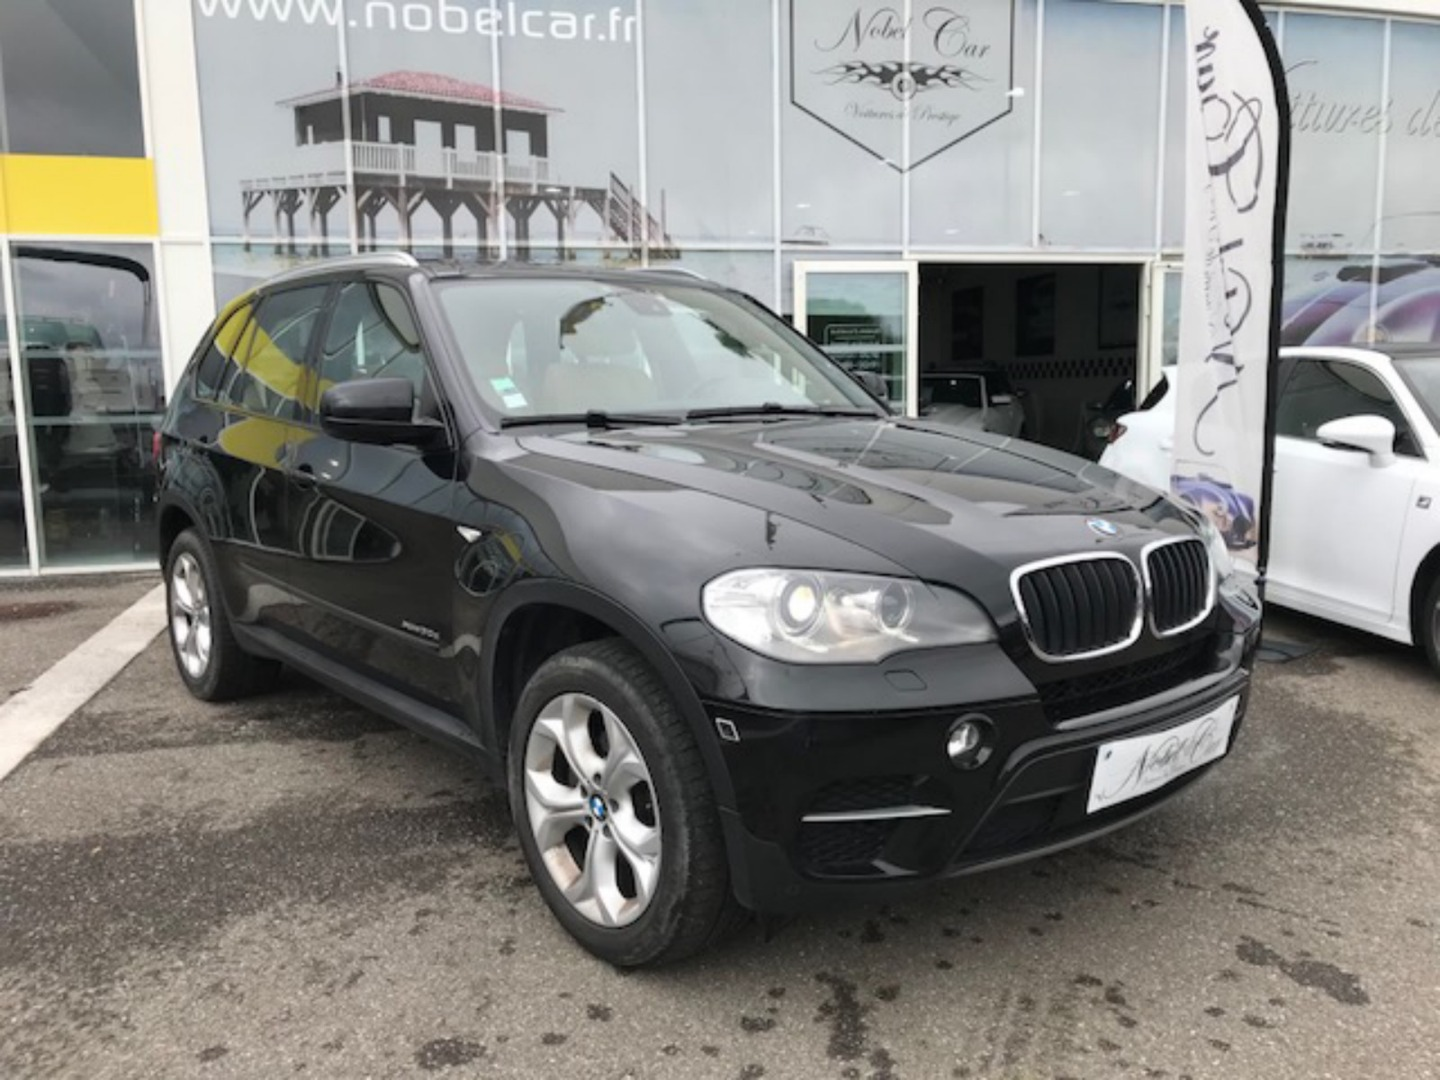 BMW X5 XDRIVE30DA 245CH EXCLUSIVE